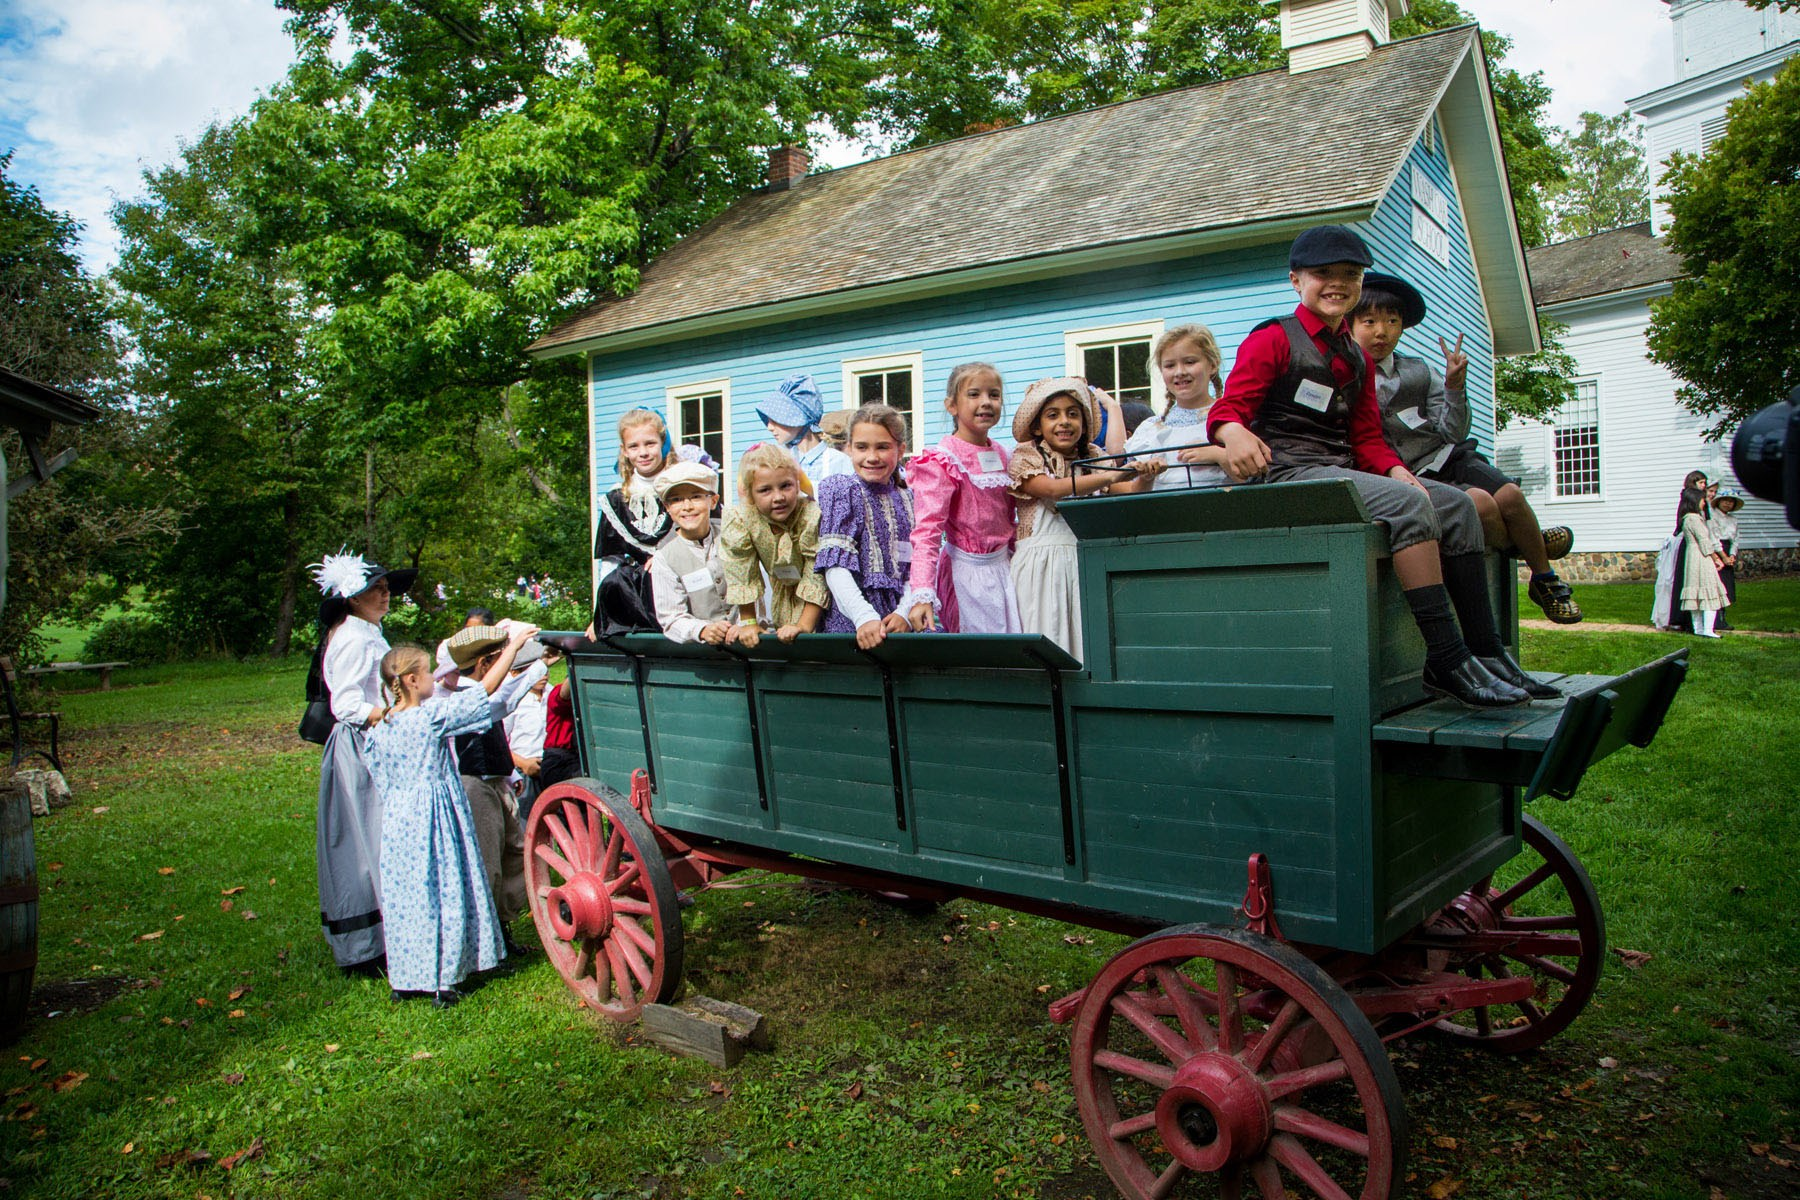 Third graders in Victorian garb pose for a Heritage Festival photo in an old time wagon.